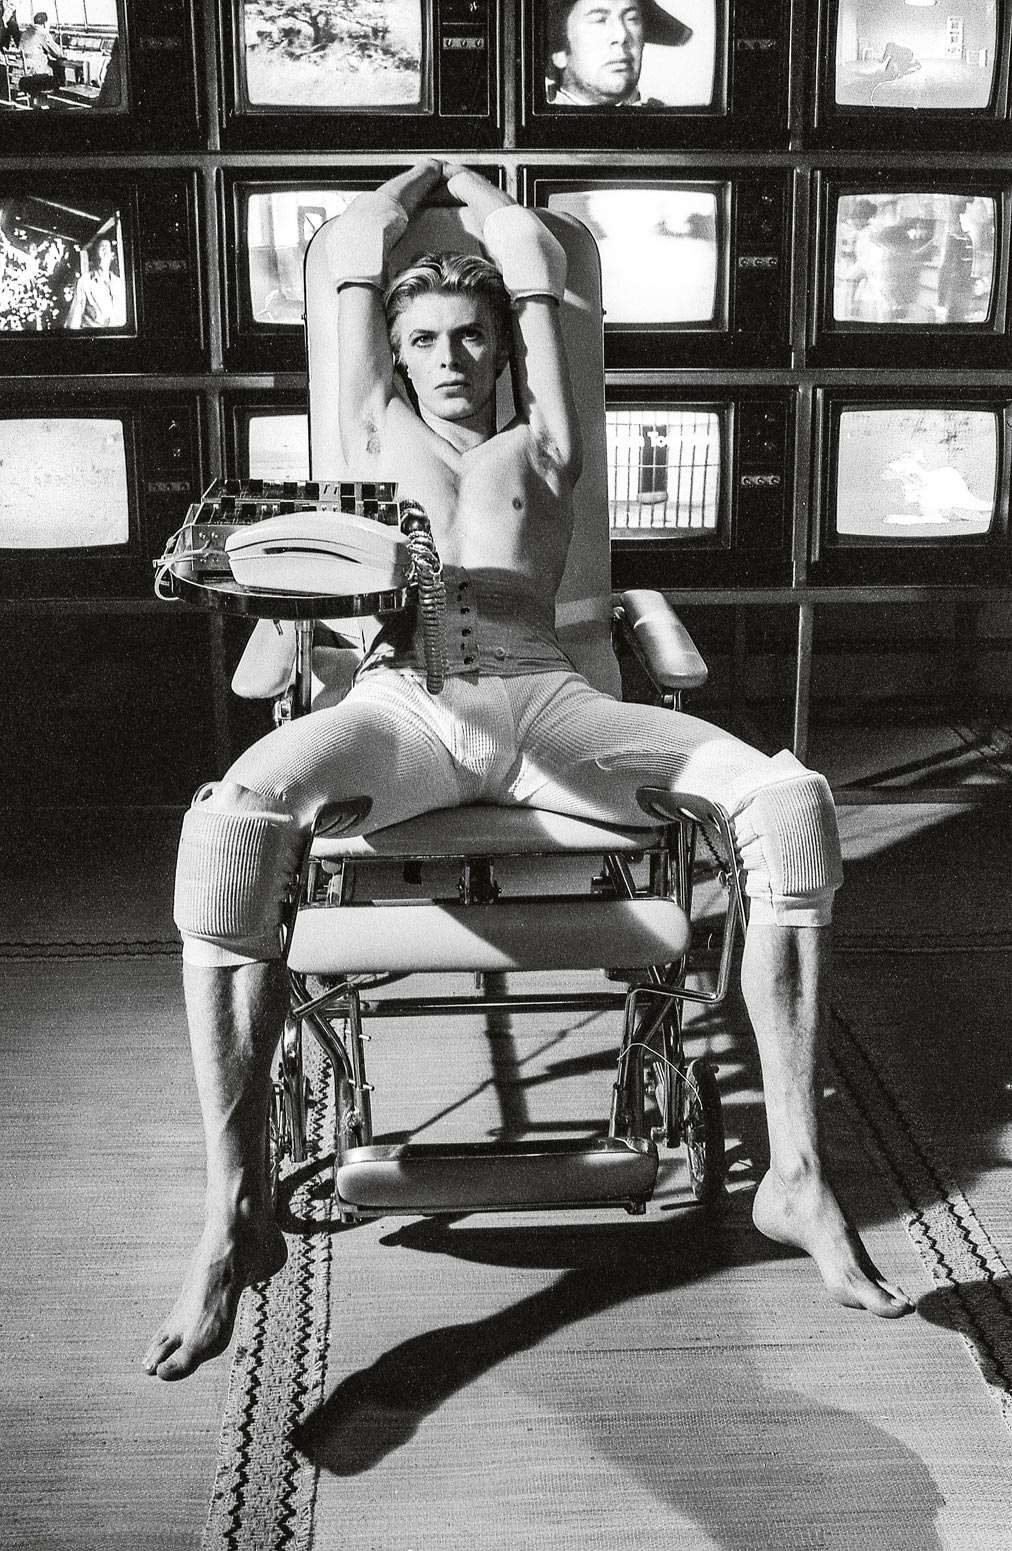 David Bowie, The Men Who Fell to Earth, foto di David Jones